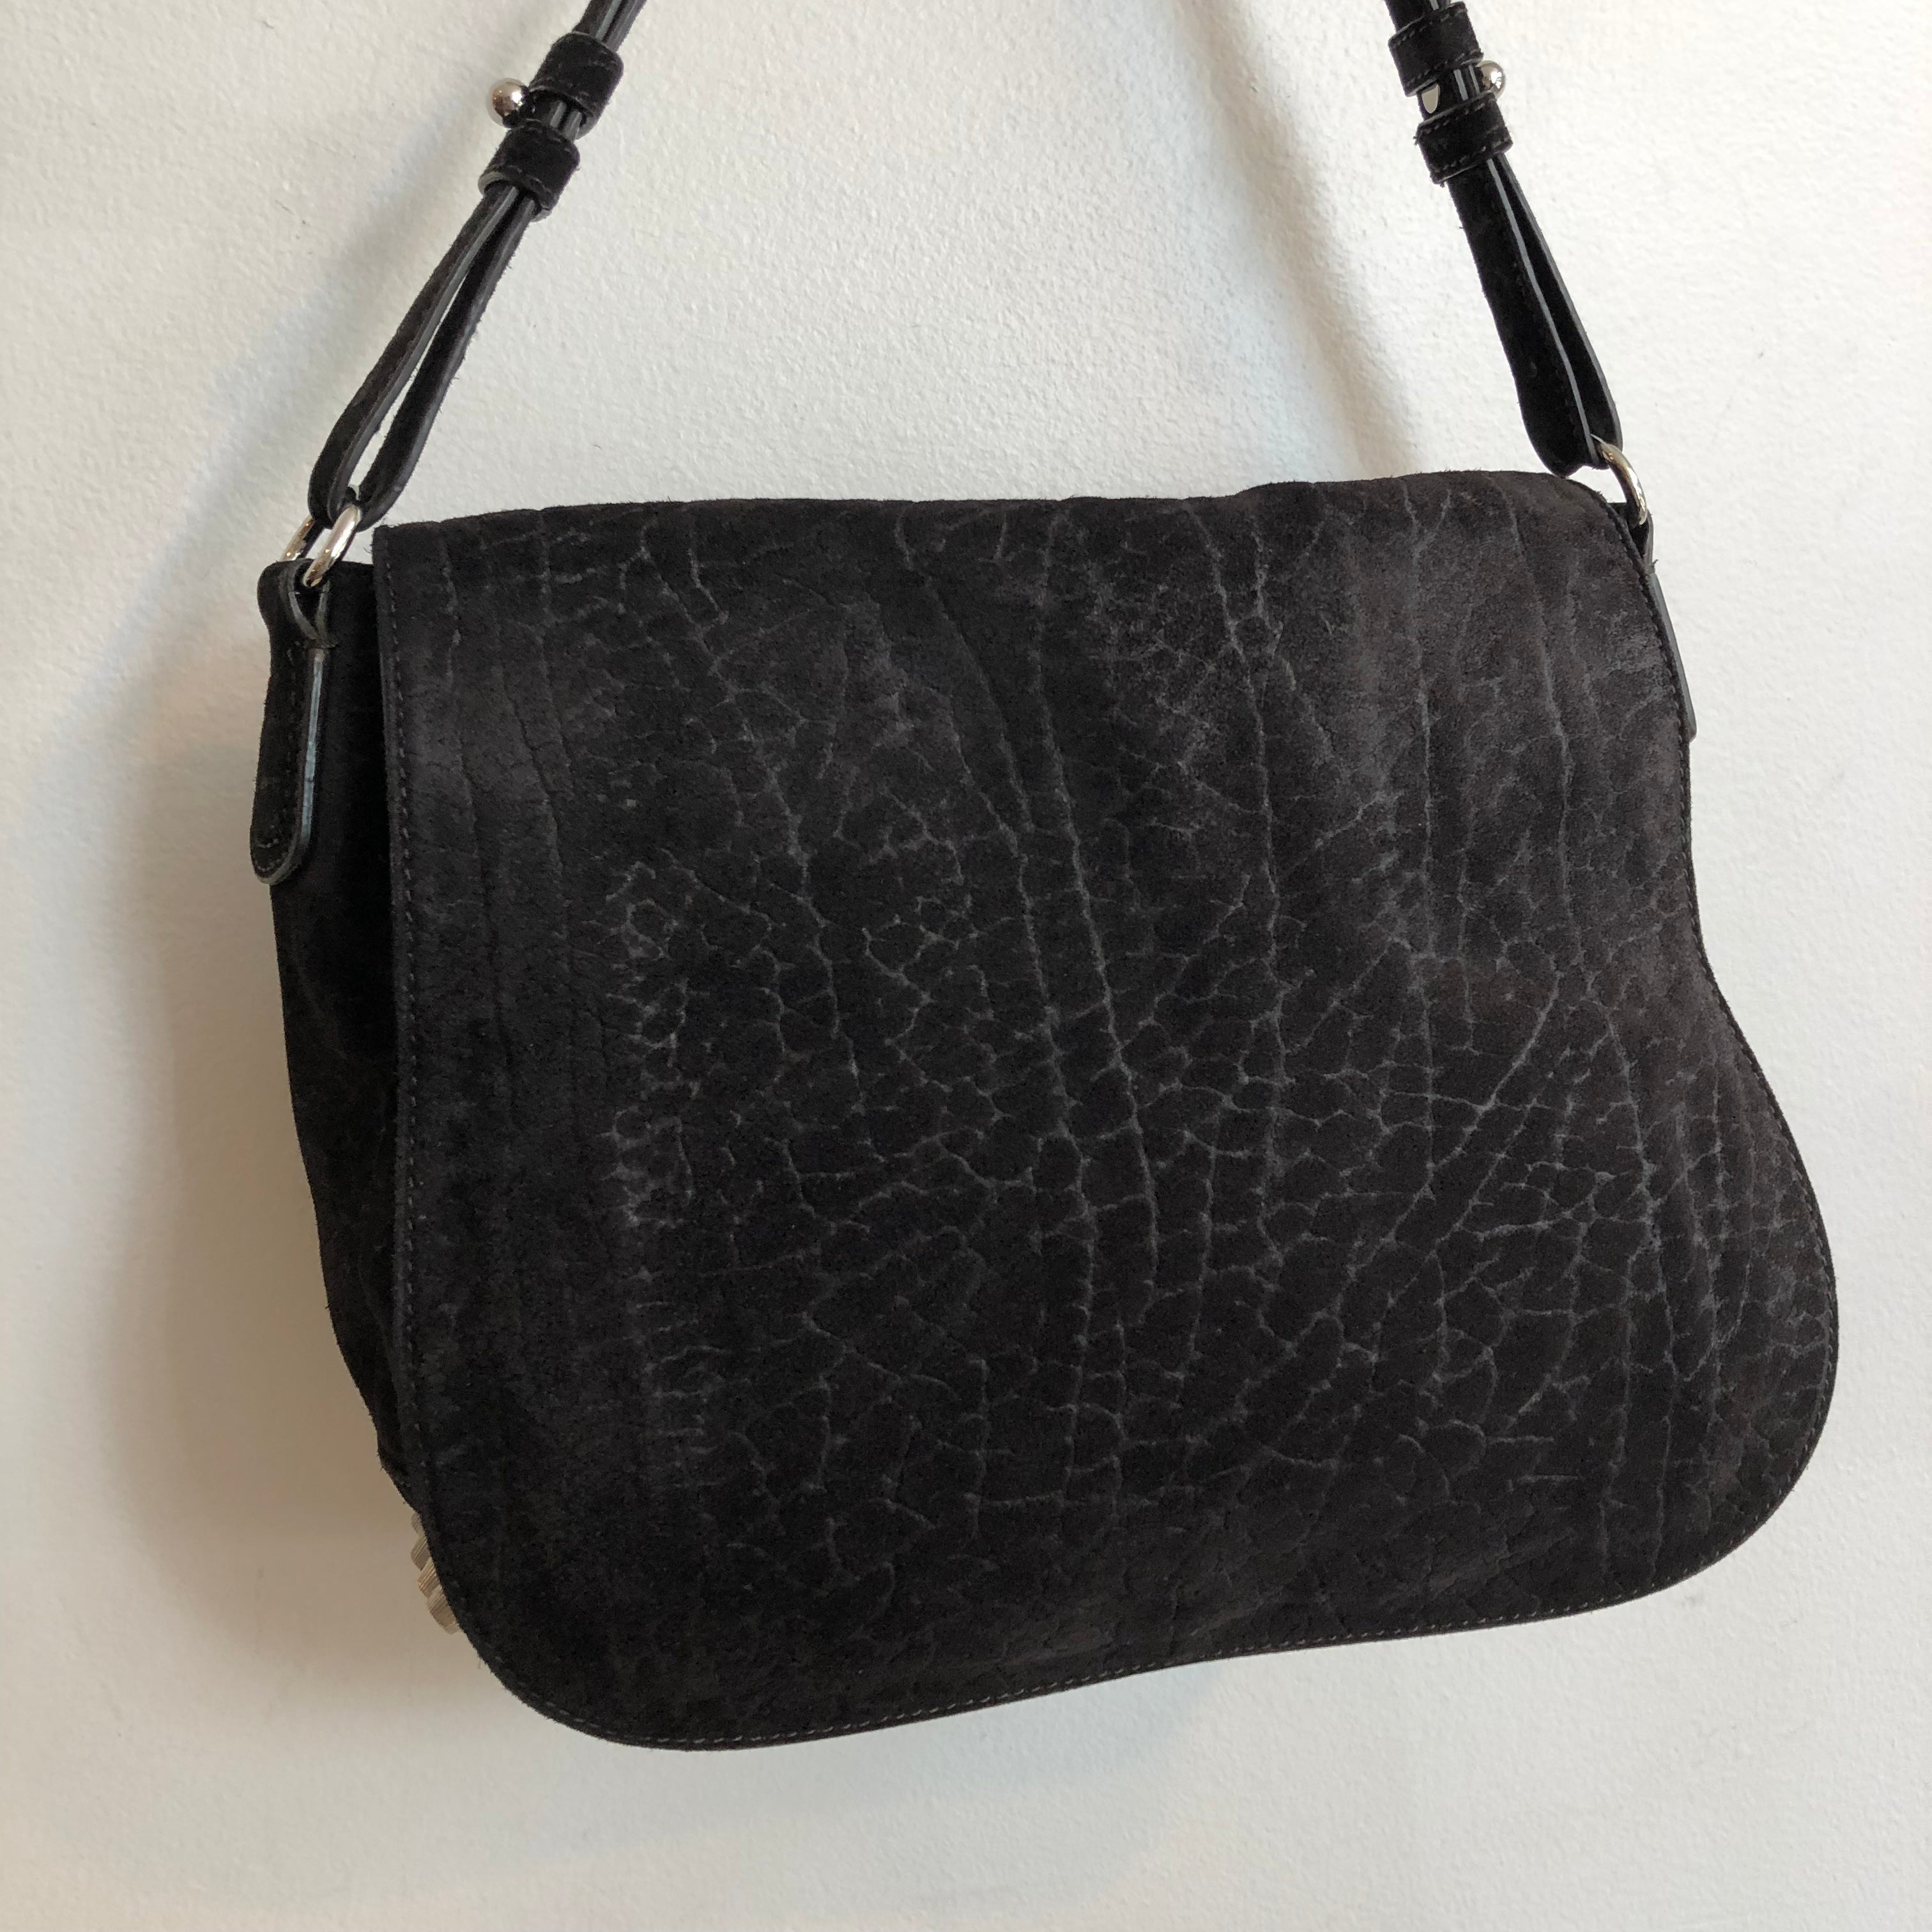 Authentic ALEXANDER WANG Black Distressed Suede Crossbody